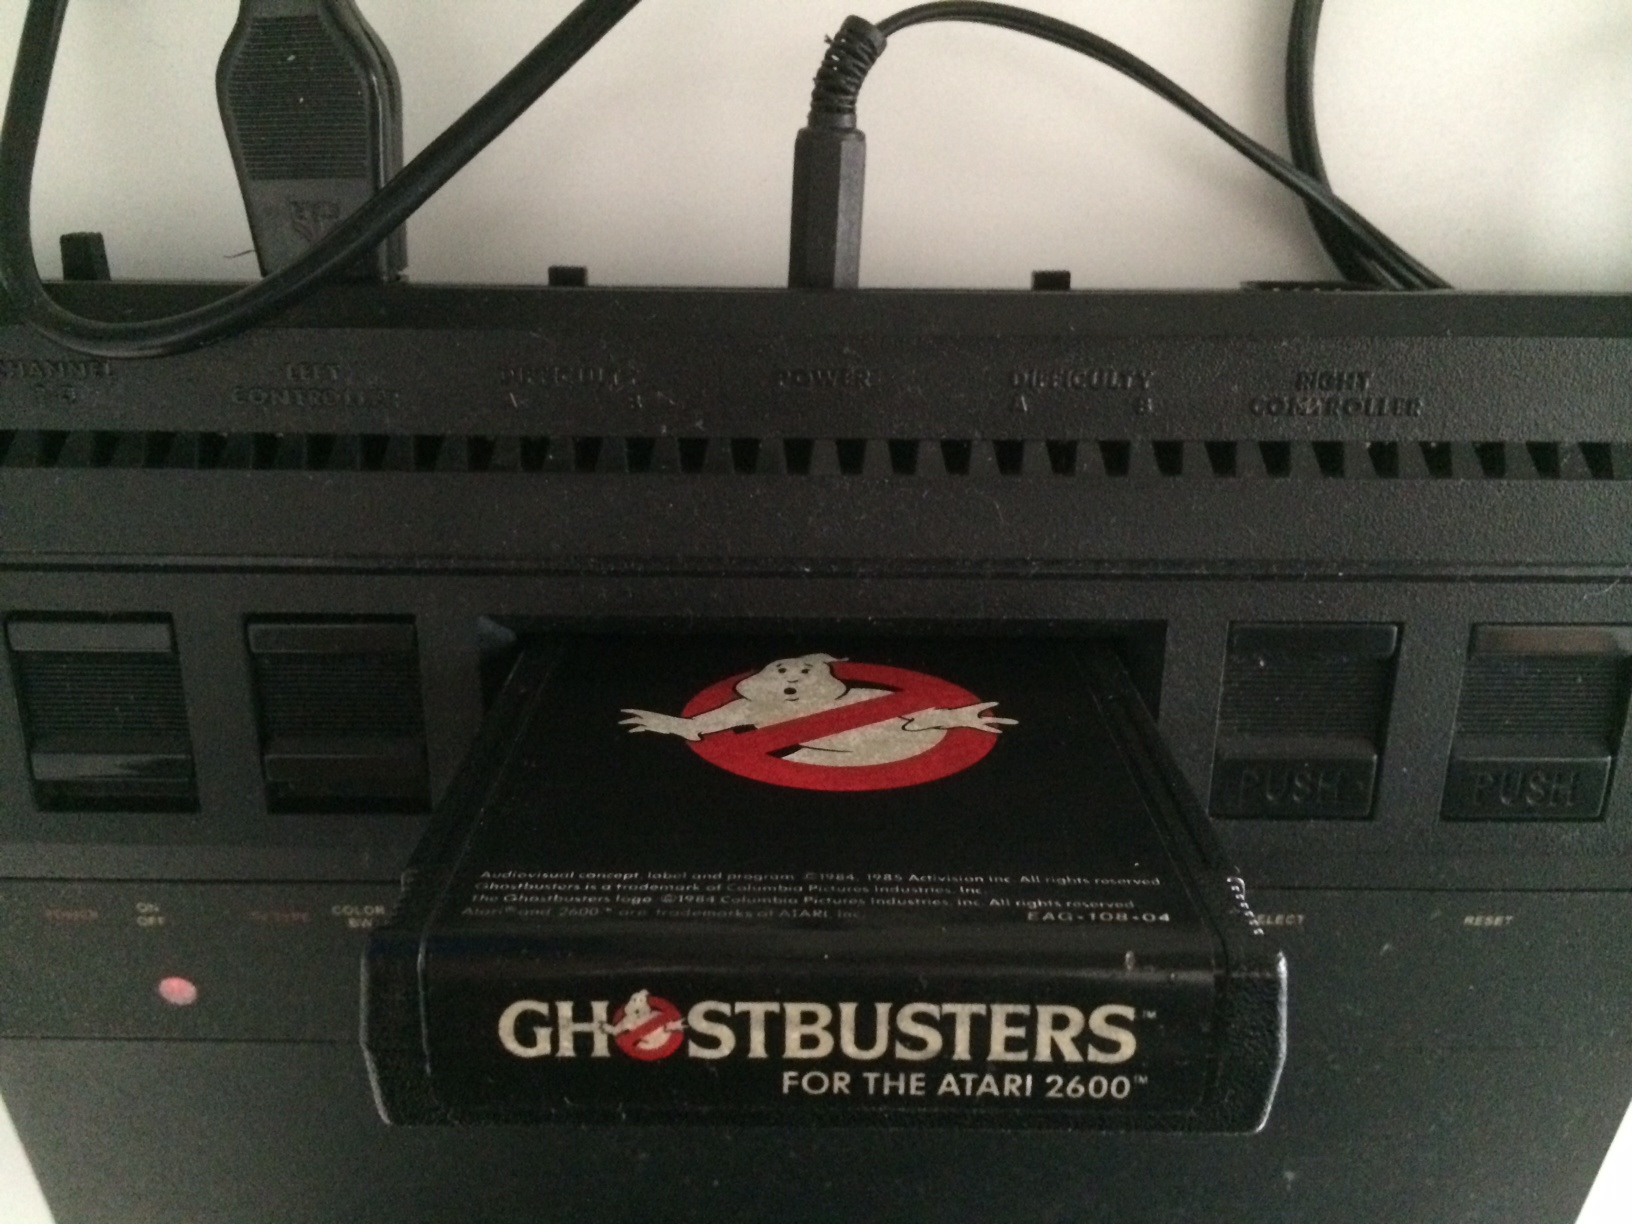 LLe: Ghostbusters (Atari 2600 Expert/A) 23,500 points on 2014-12-07 04:33:17